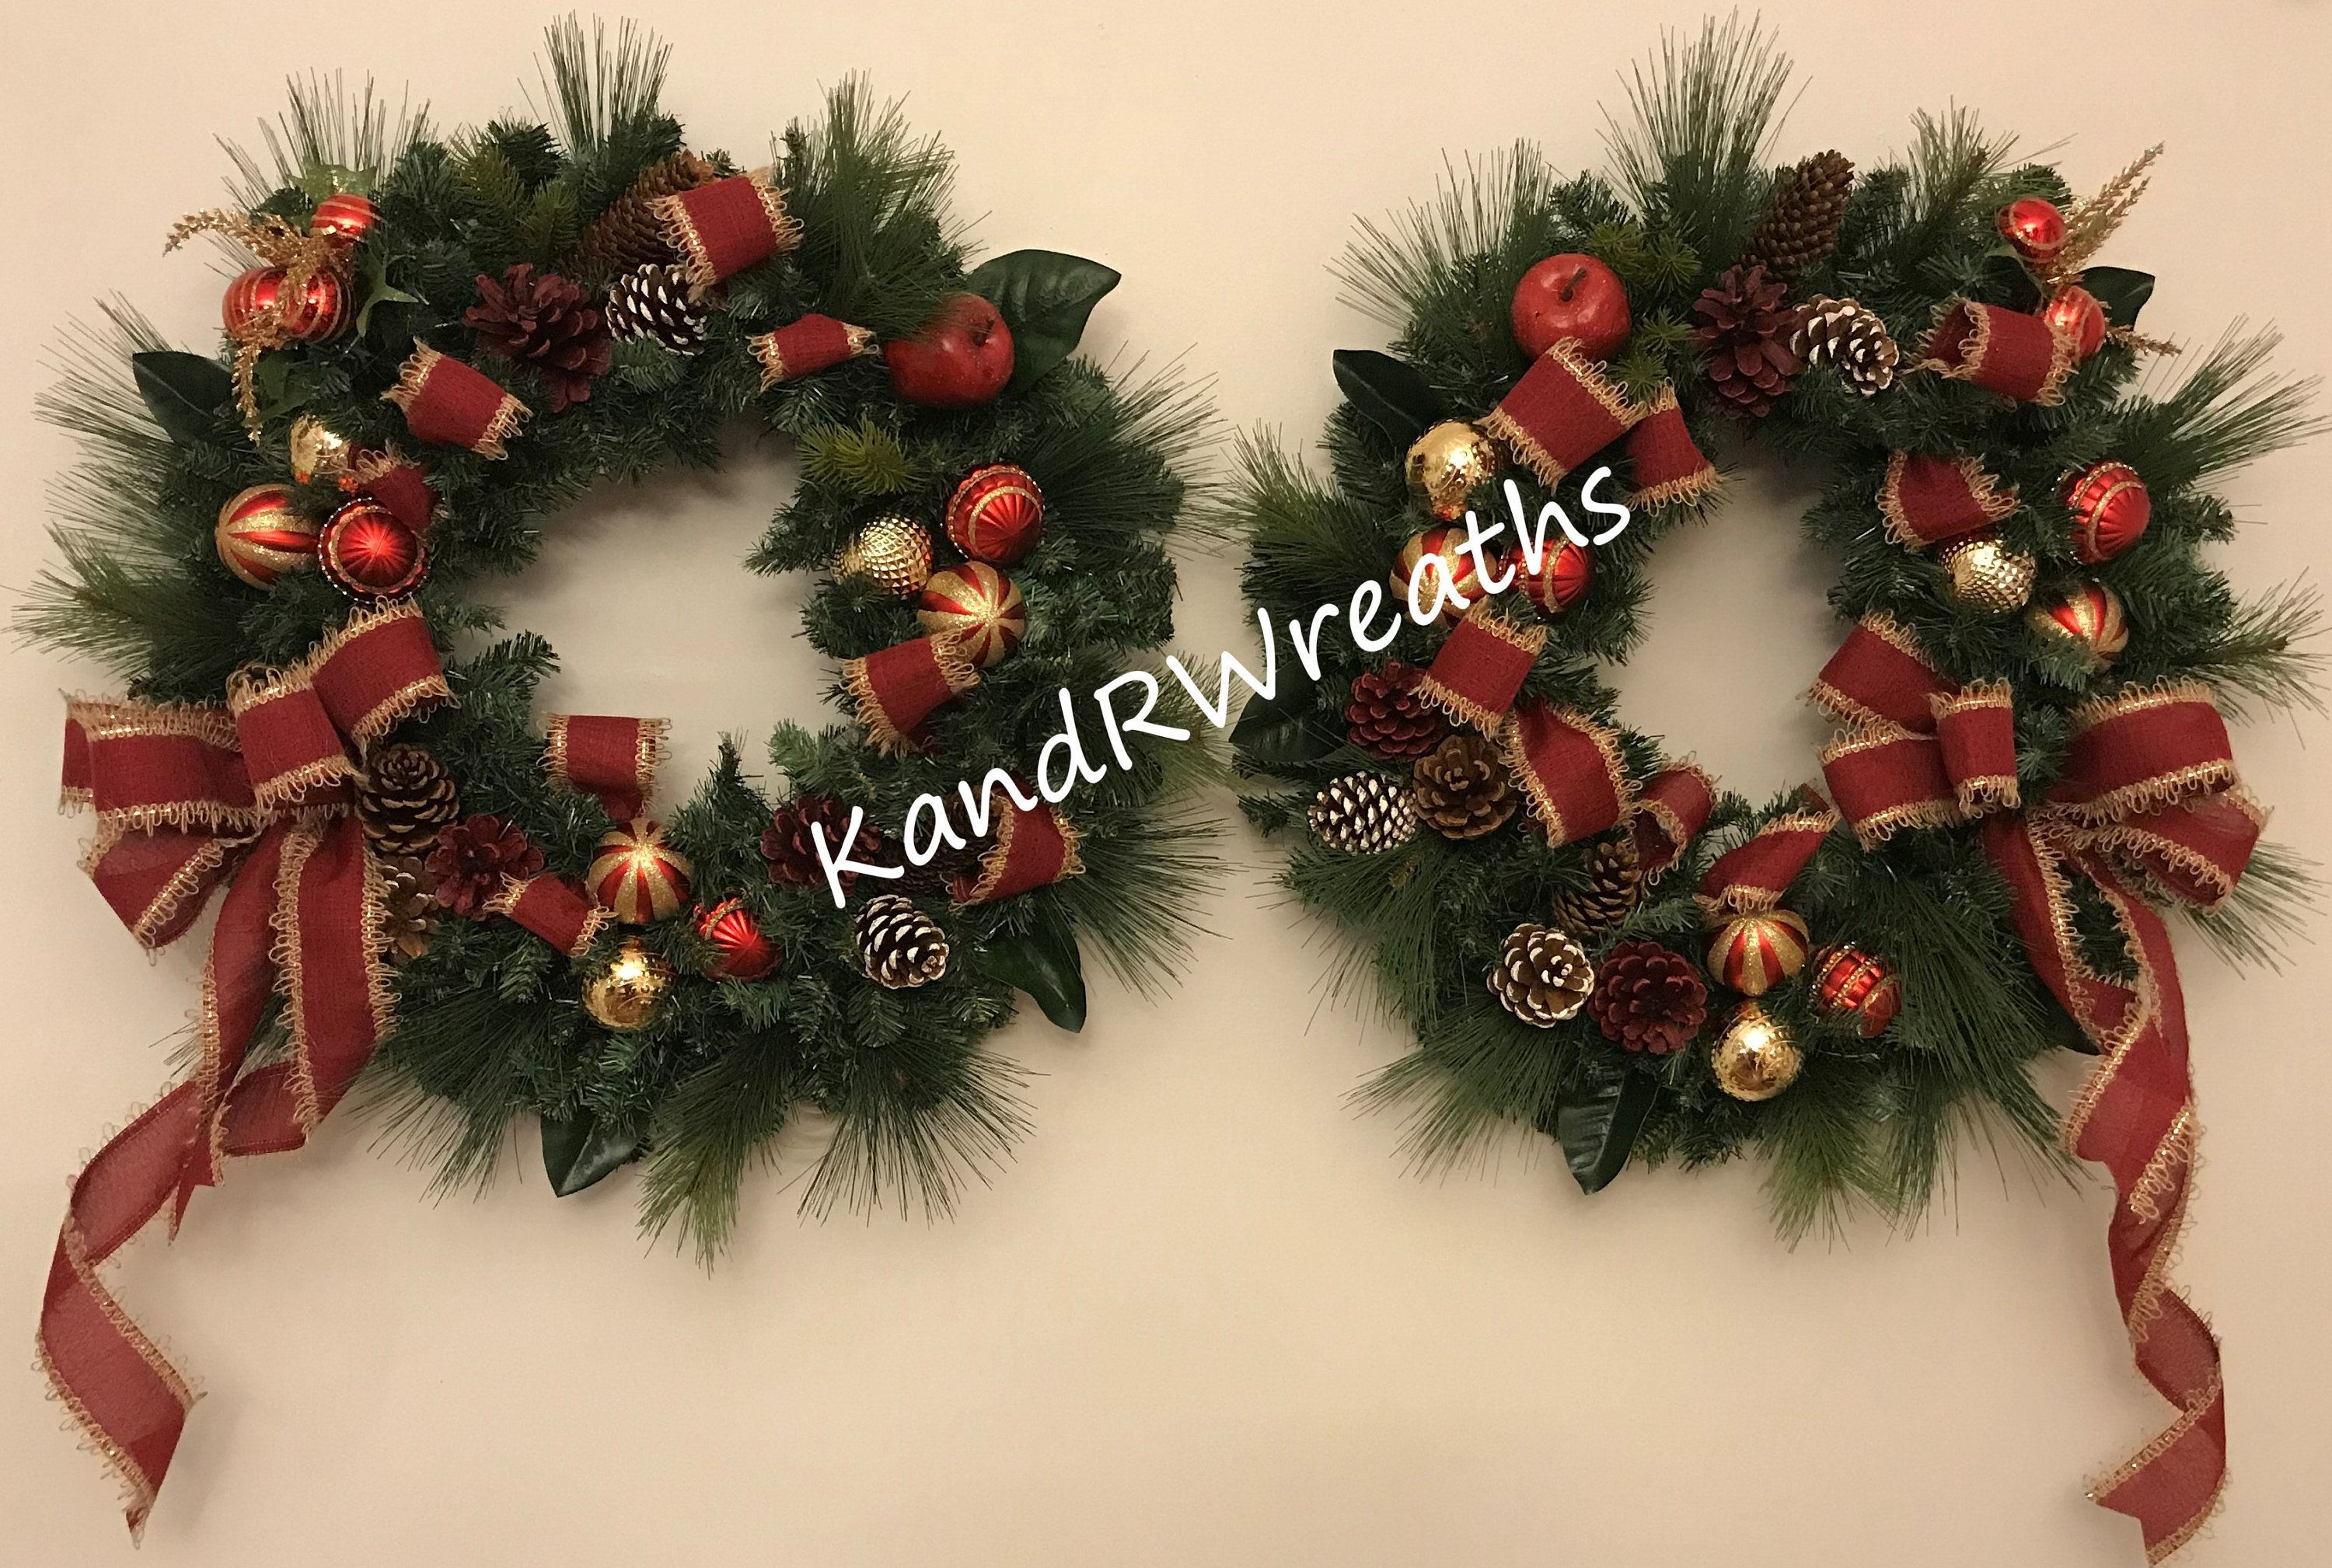 229C18 Double Door Christmas Wreath. Lighted Christmas Wreath. Double Door Holiday wreath. Double Front Door Wreath #doubledoorwreaths 229C18 Double Door Christmas Wreath. Lighted Christmas Wreath. Double Door Holiday wreath. Double Front Door Wreath. by KandRWreaths on Etsy #doubledoorwreaths